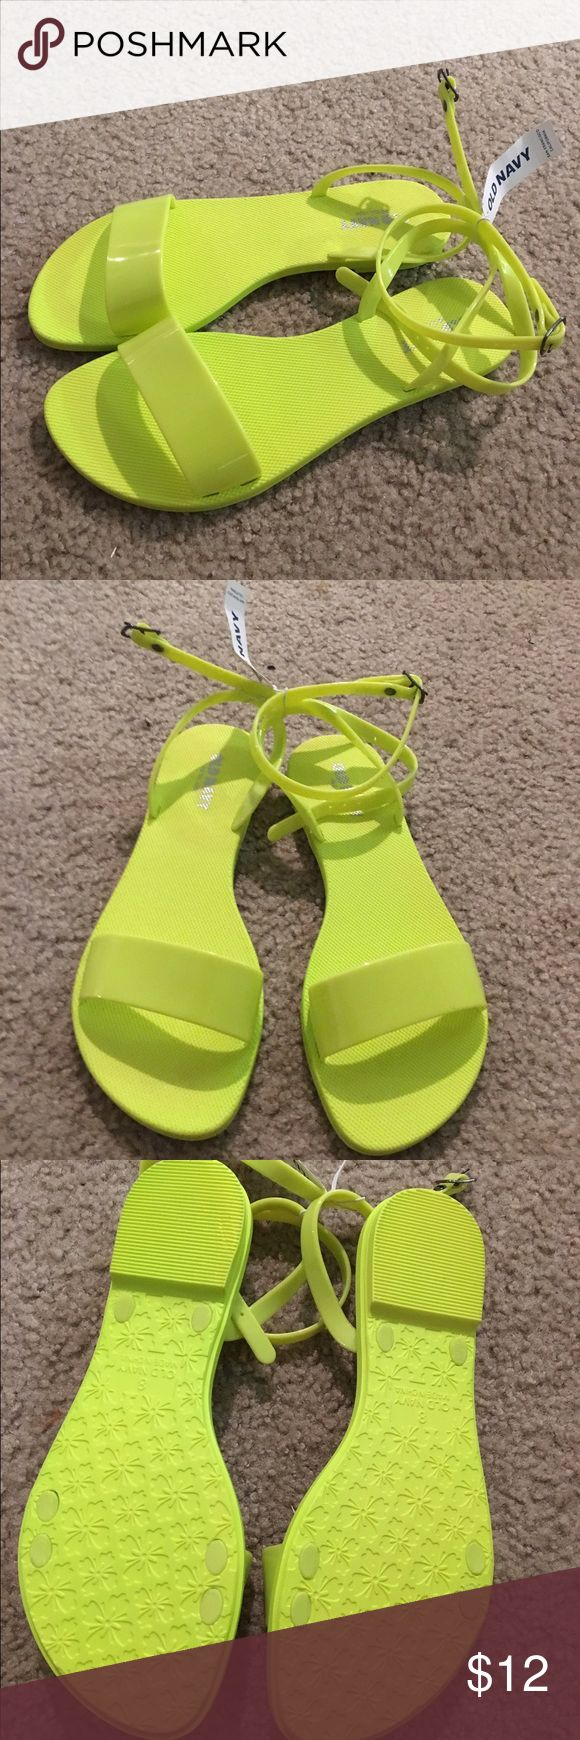 NWT Neon Sandals Neon flat sandals Old Navy Shoes Sandals